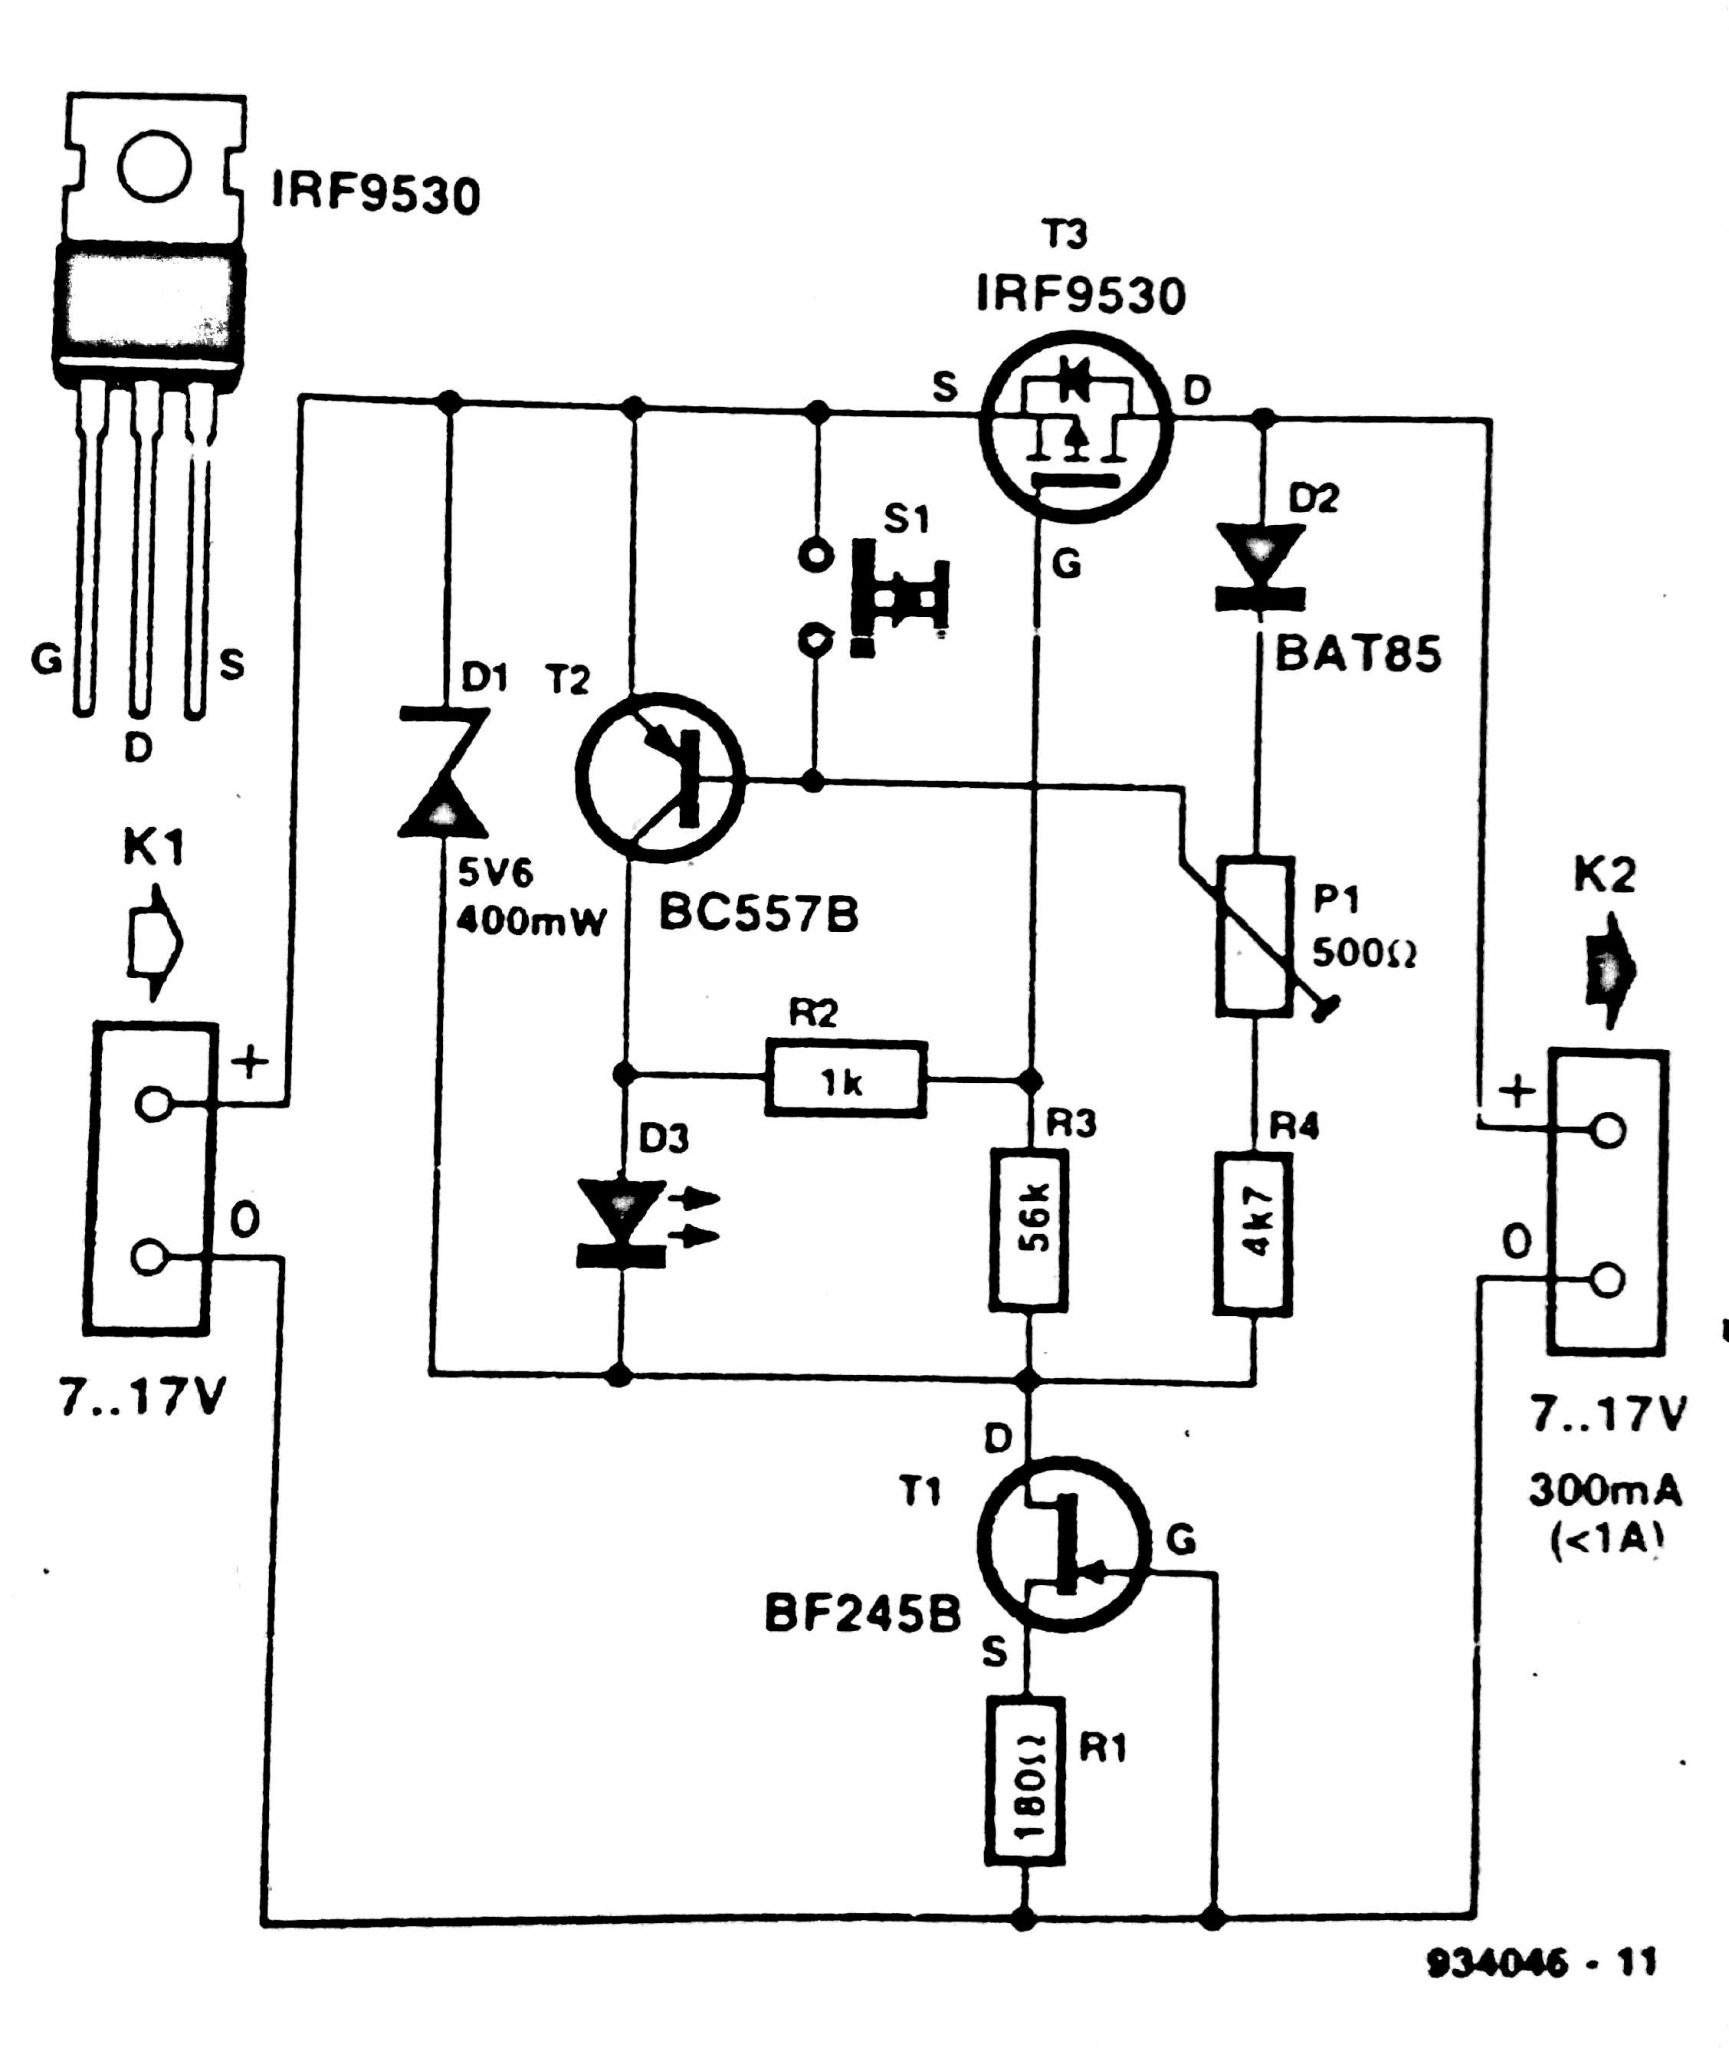 Drop Coin And Get Power Circuit Diagram Kits